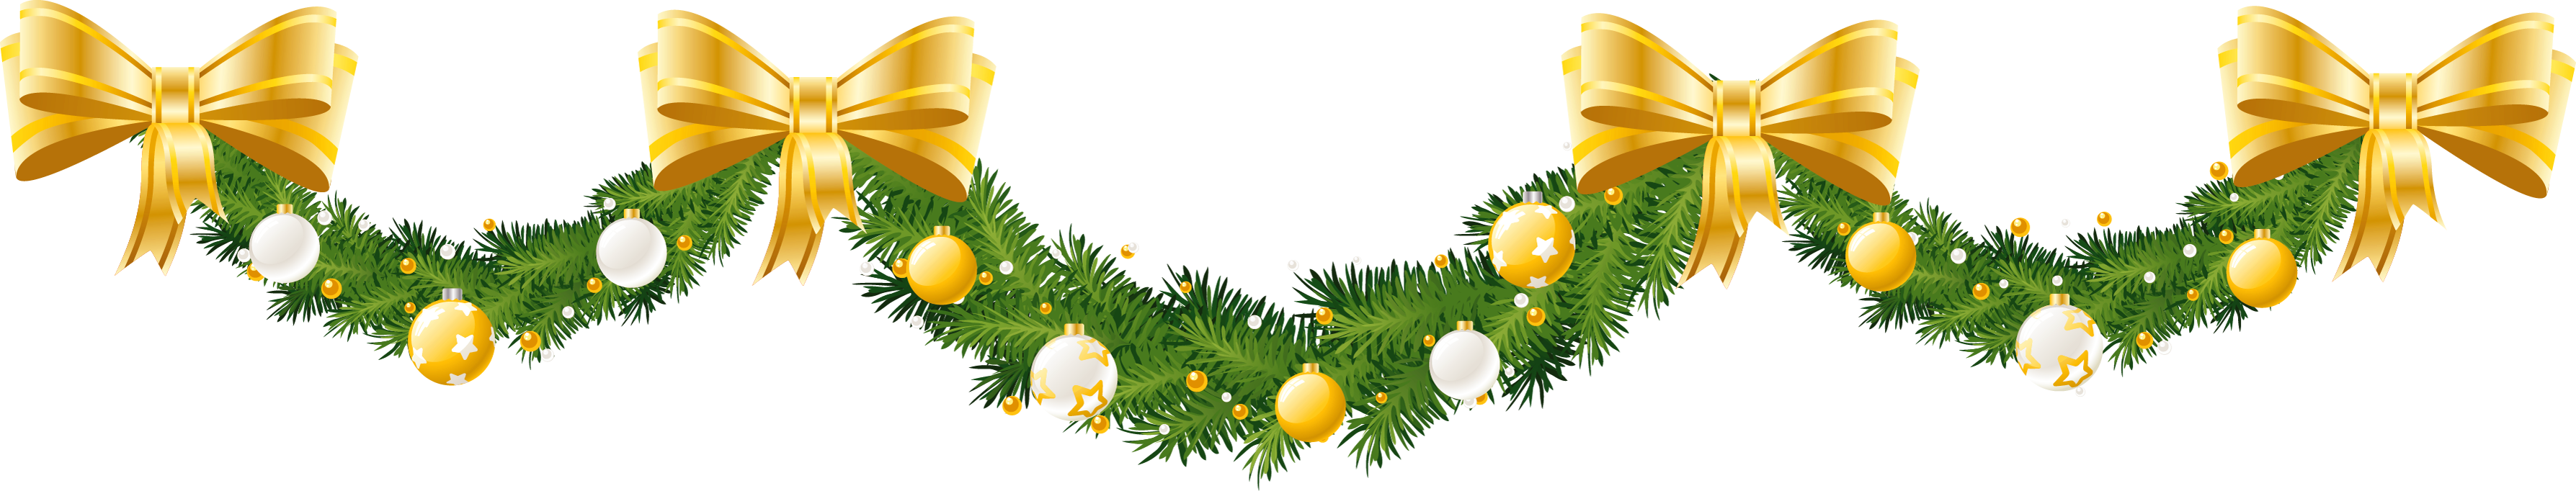 Transparent christmas png. Hq images pluspng decoration